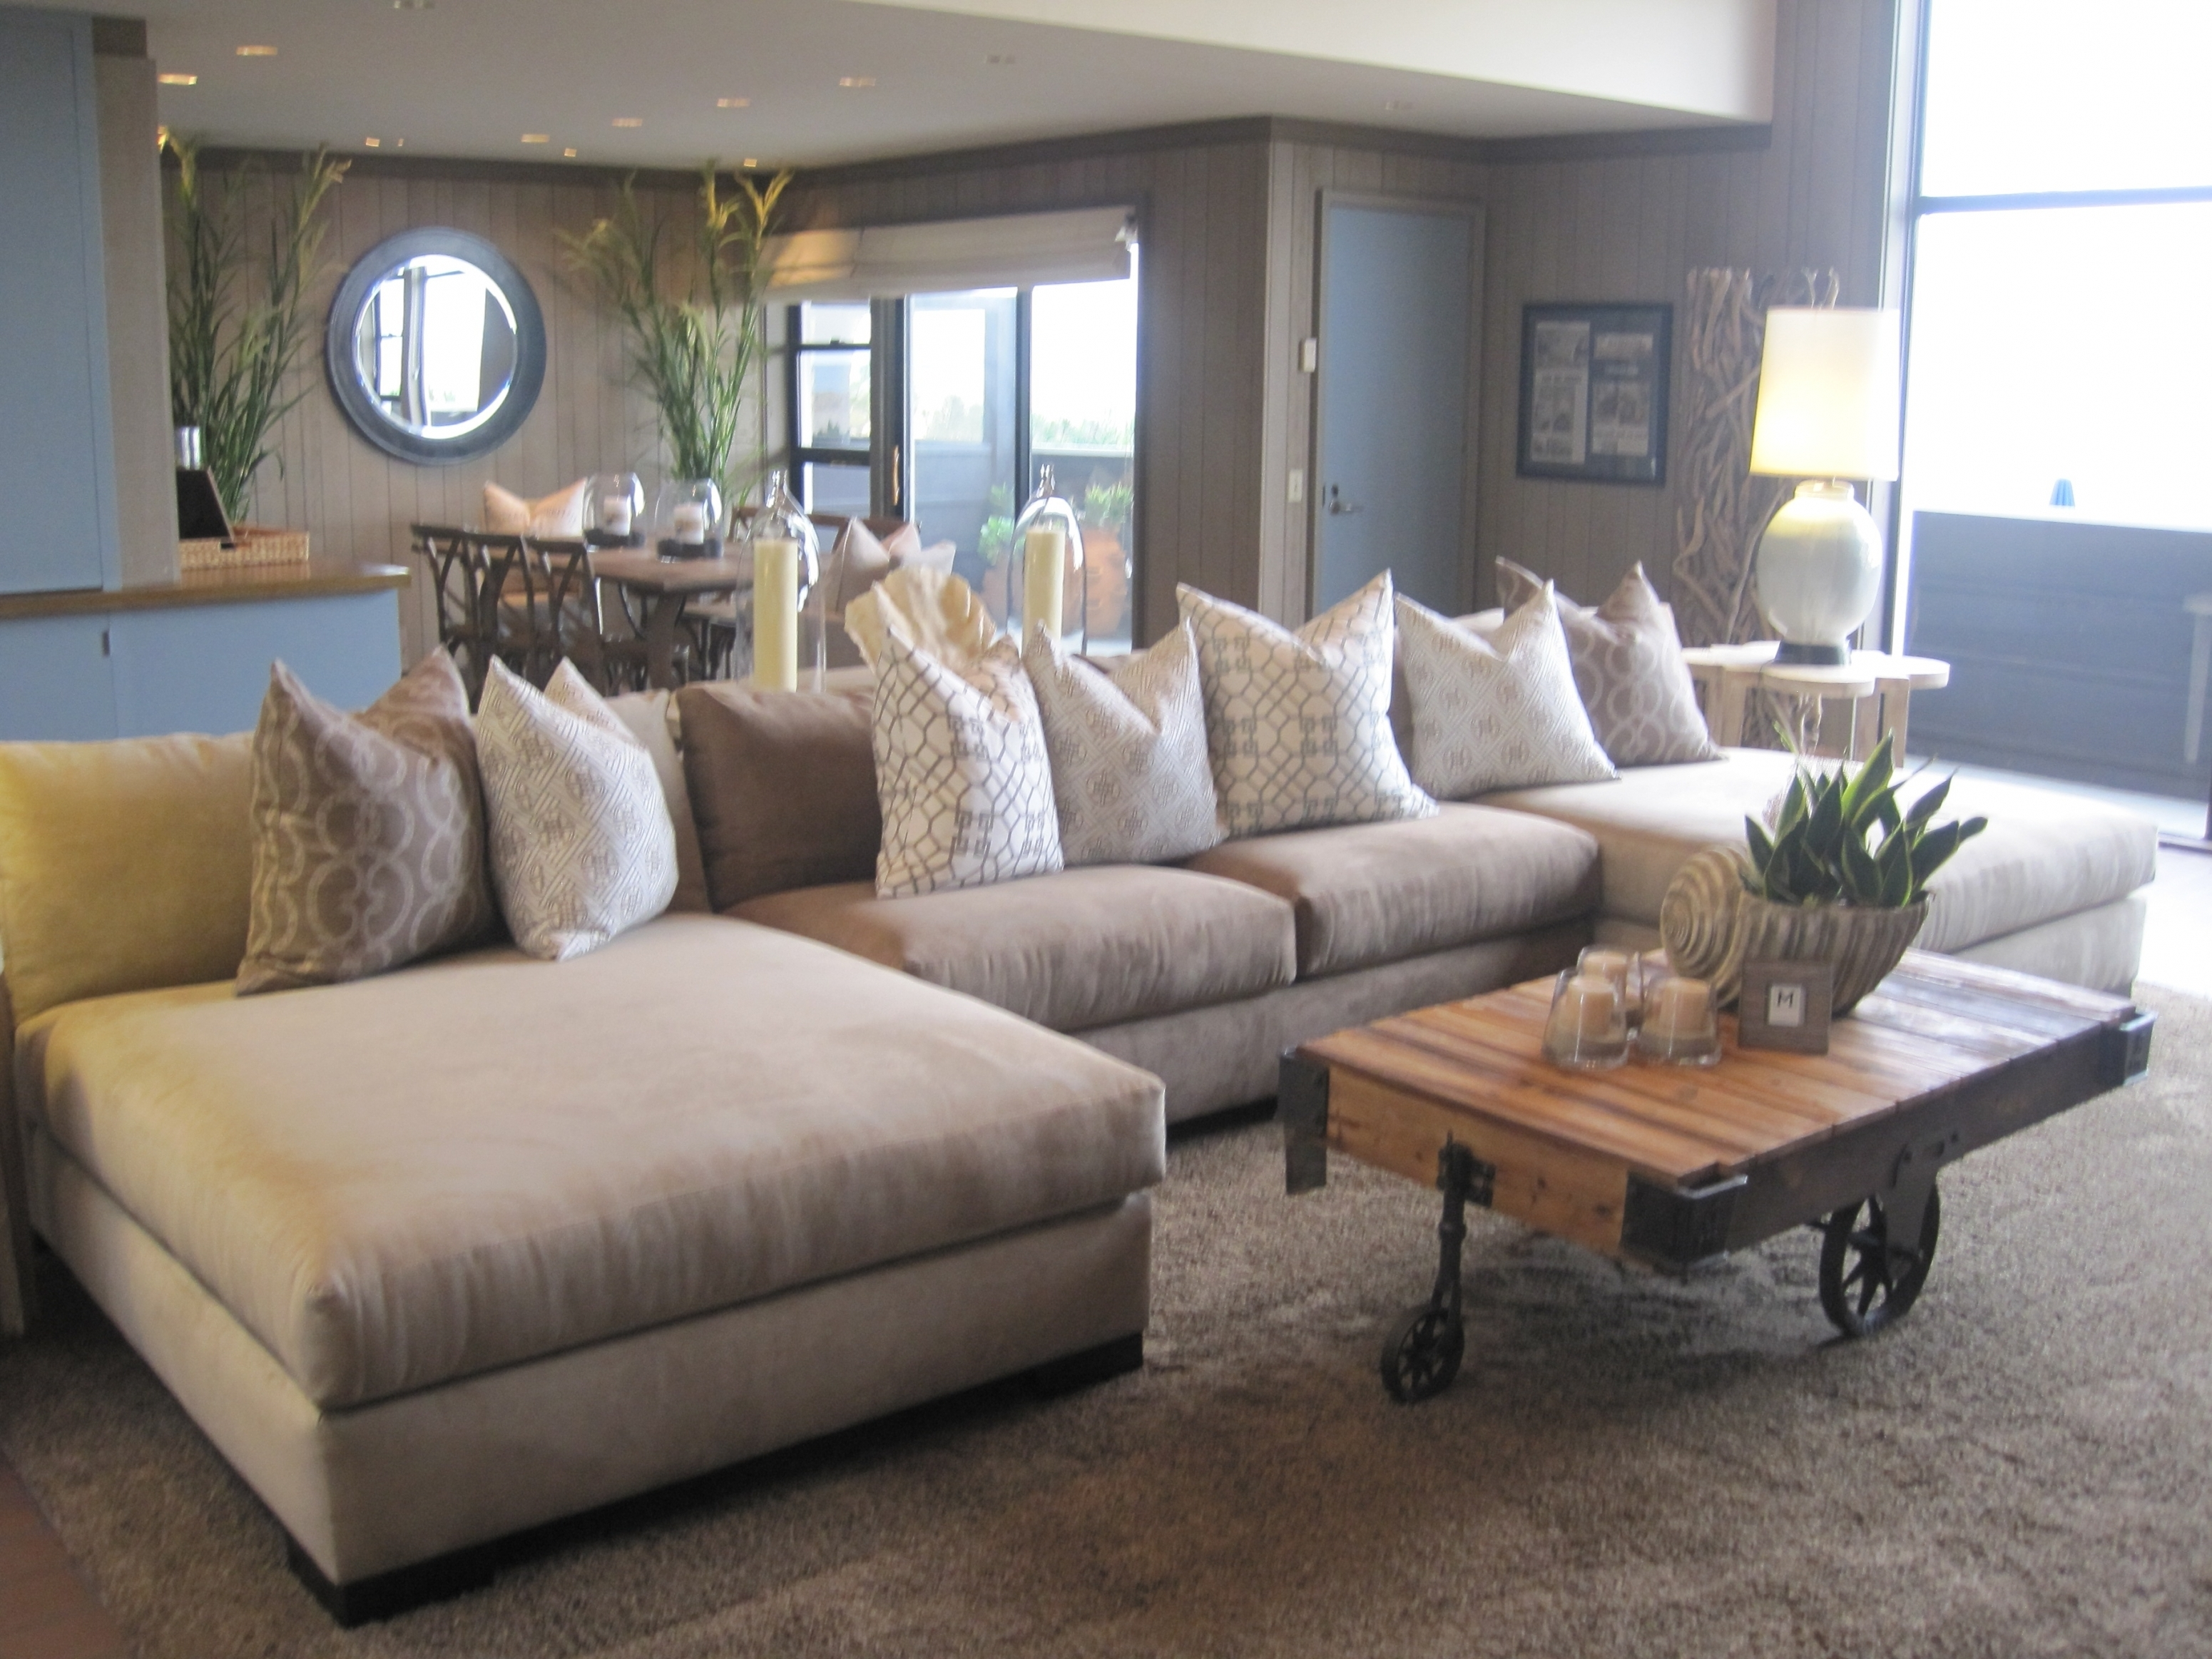 25 Best Of Images Of Double Chaise Lounge Living Room (View 1 of 15)